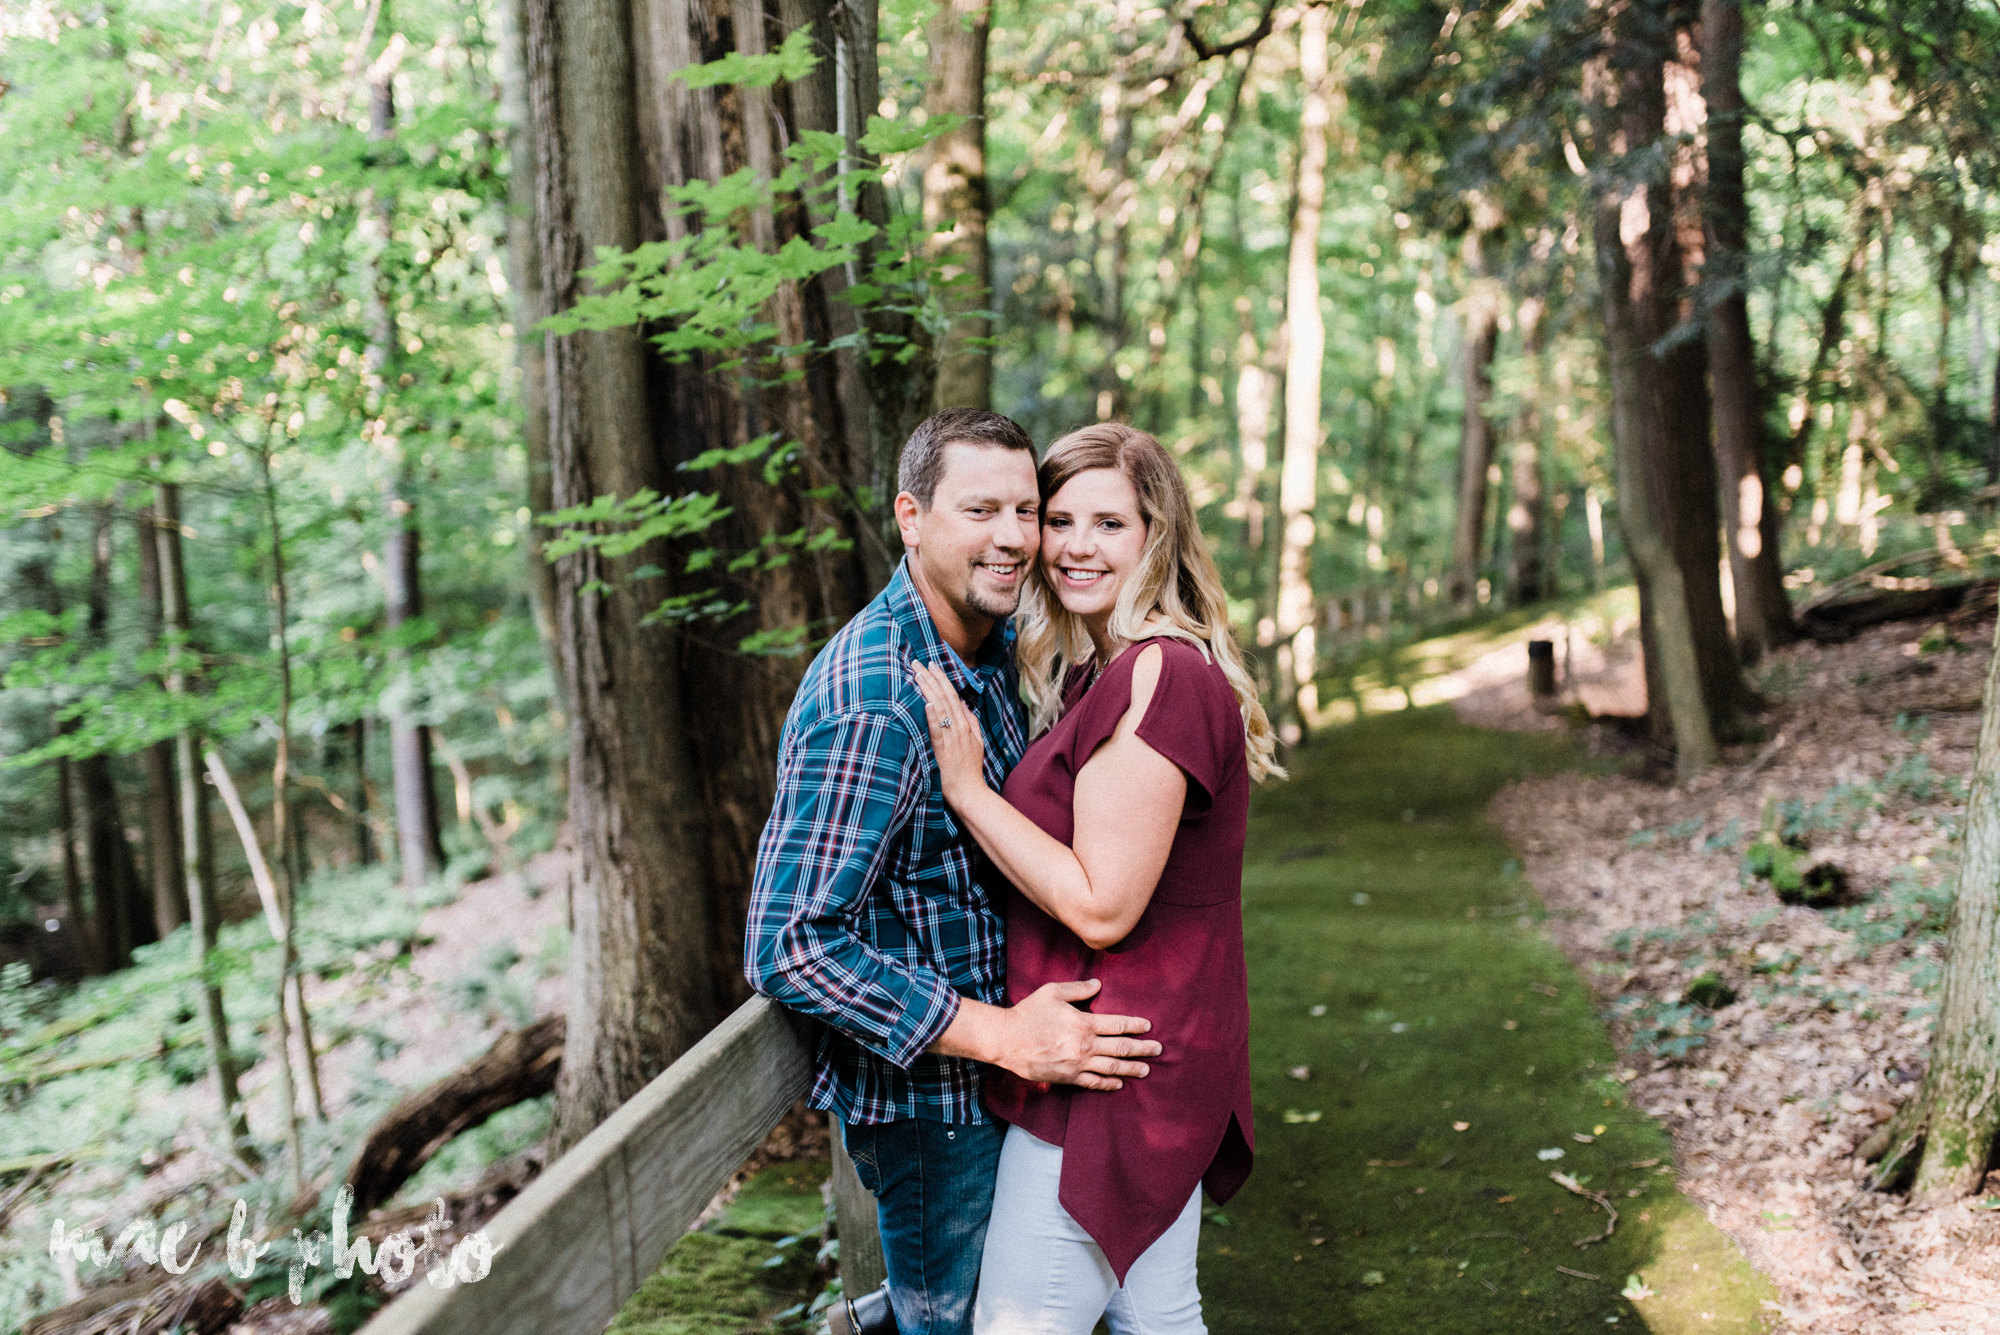 becca and rich's woodsy summer engagement session at ford nature center in mill creek park in youngstown ohio photographed by cleveland wedding photographer mae b photo-4.jpg